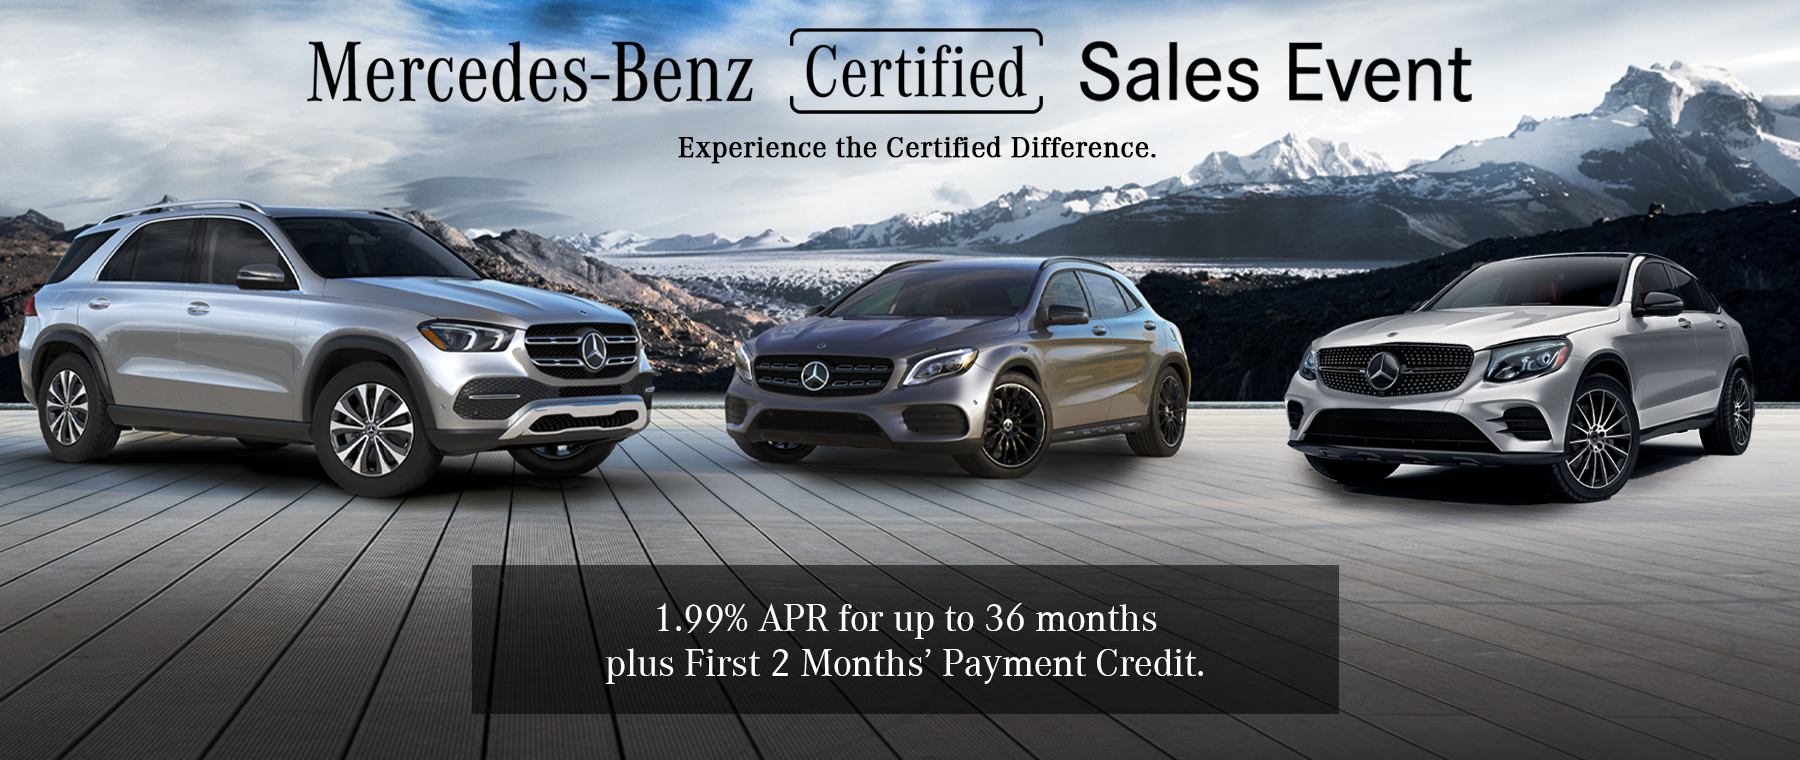 Mercedes-Benz Certified Pre-Owned Event